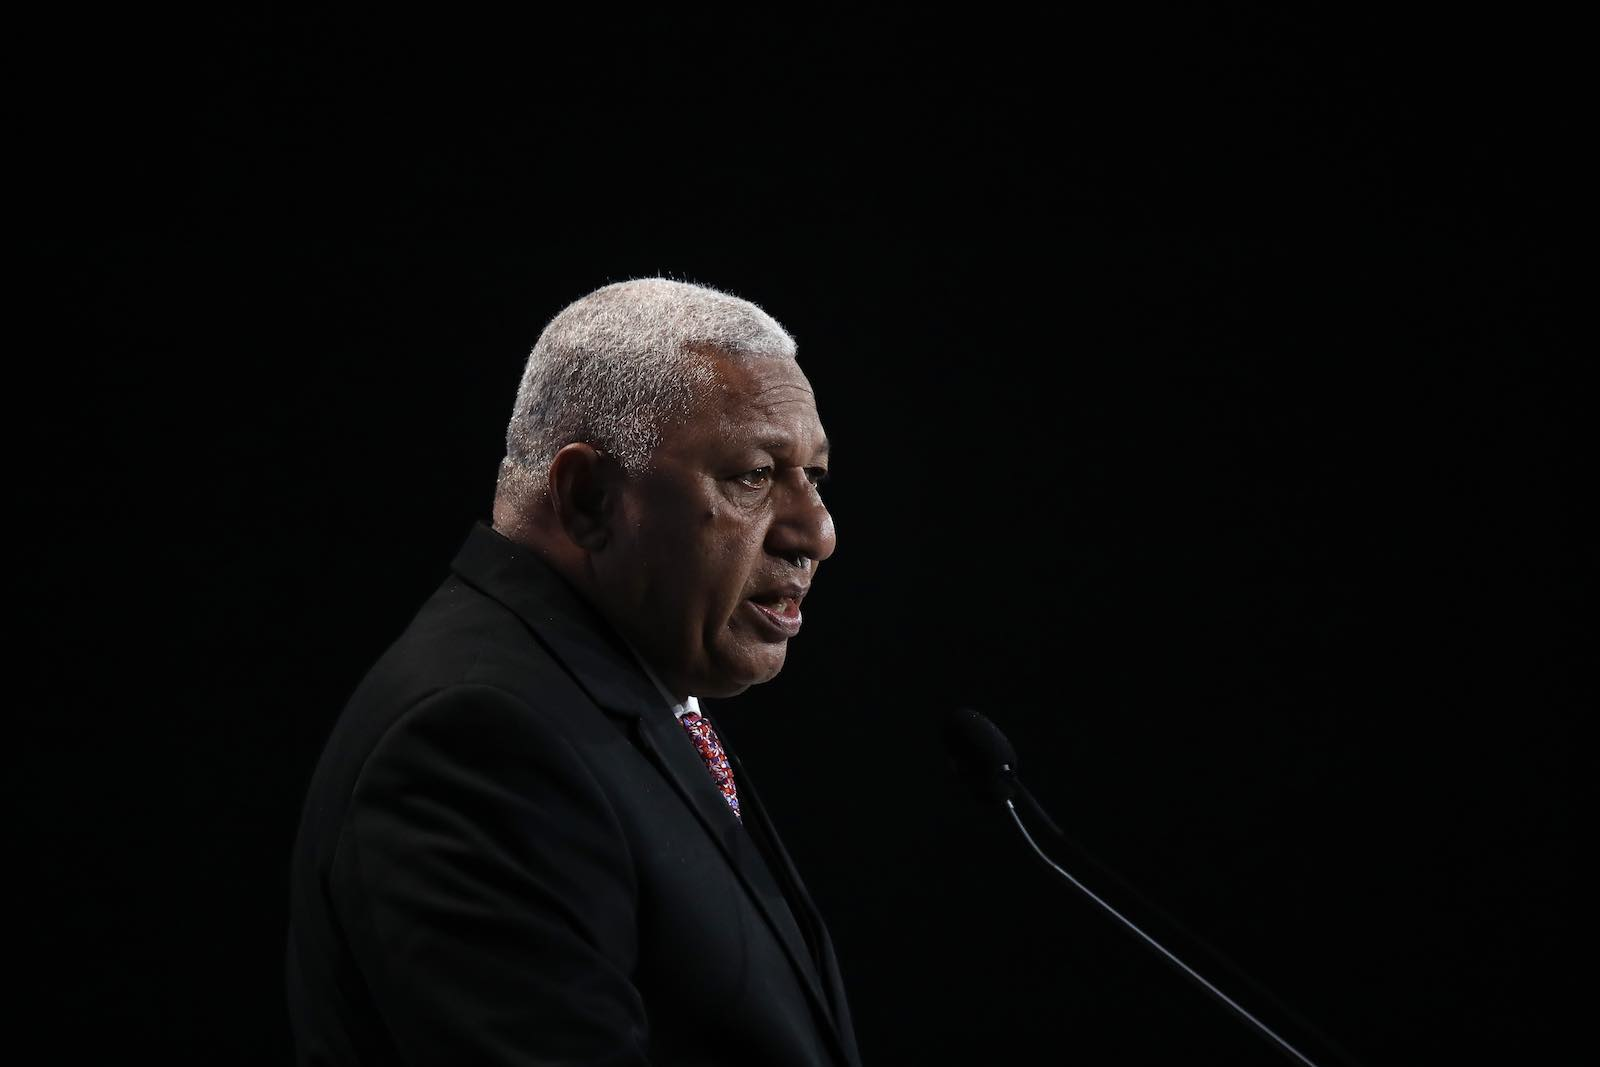 Frank Bainimarama has returned after boycotting the Pacific Islands Forum for the past 12 years (Photo: Sean Gallup/Getty)